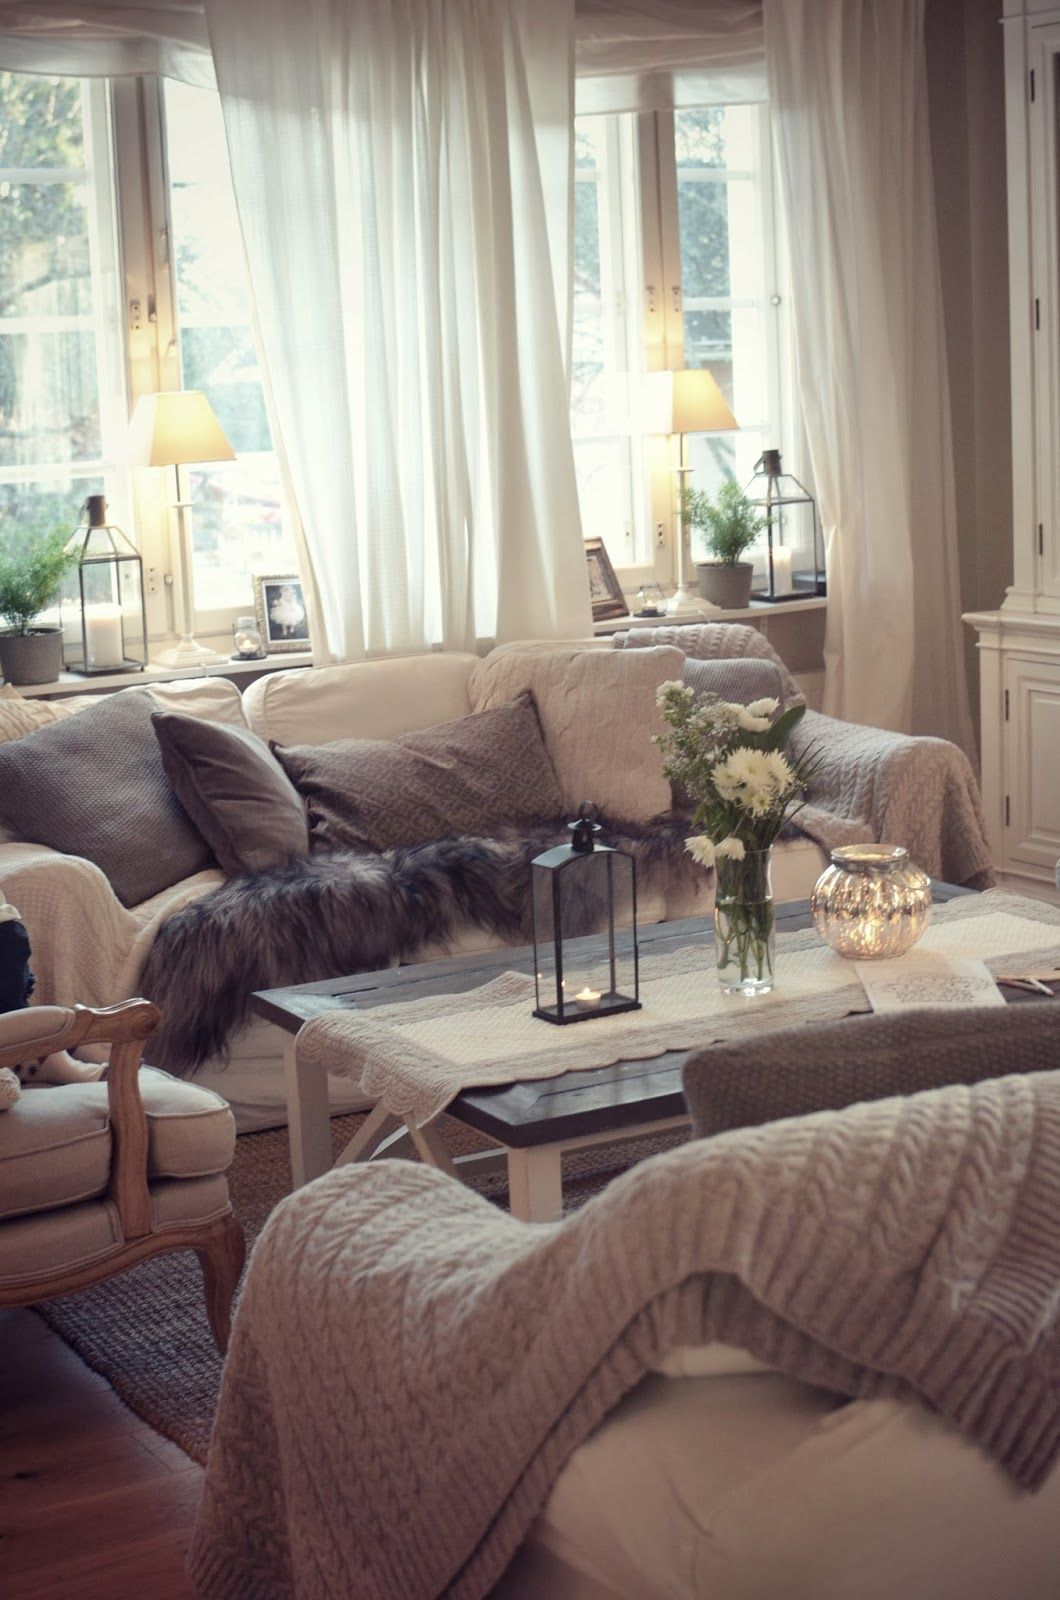 Neutral Color Pallet For Living Room That Looks Warm, Cozy, And Inviting.takes  Away From The Coziness And Privacy Part 51